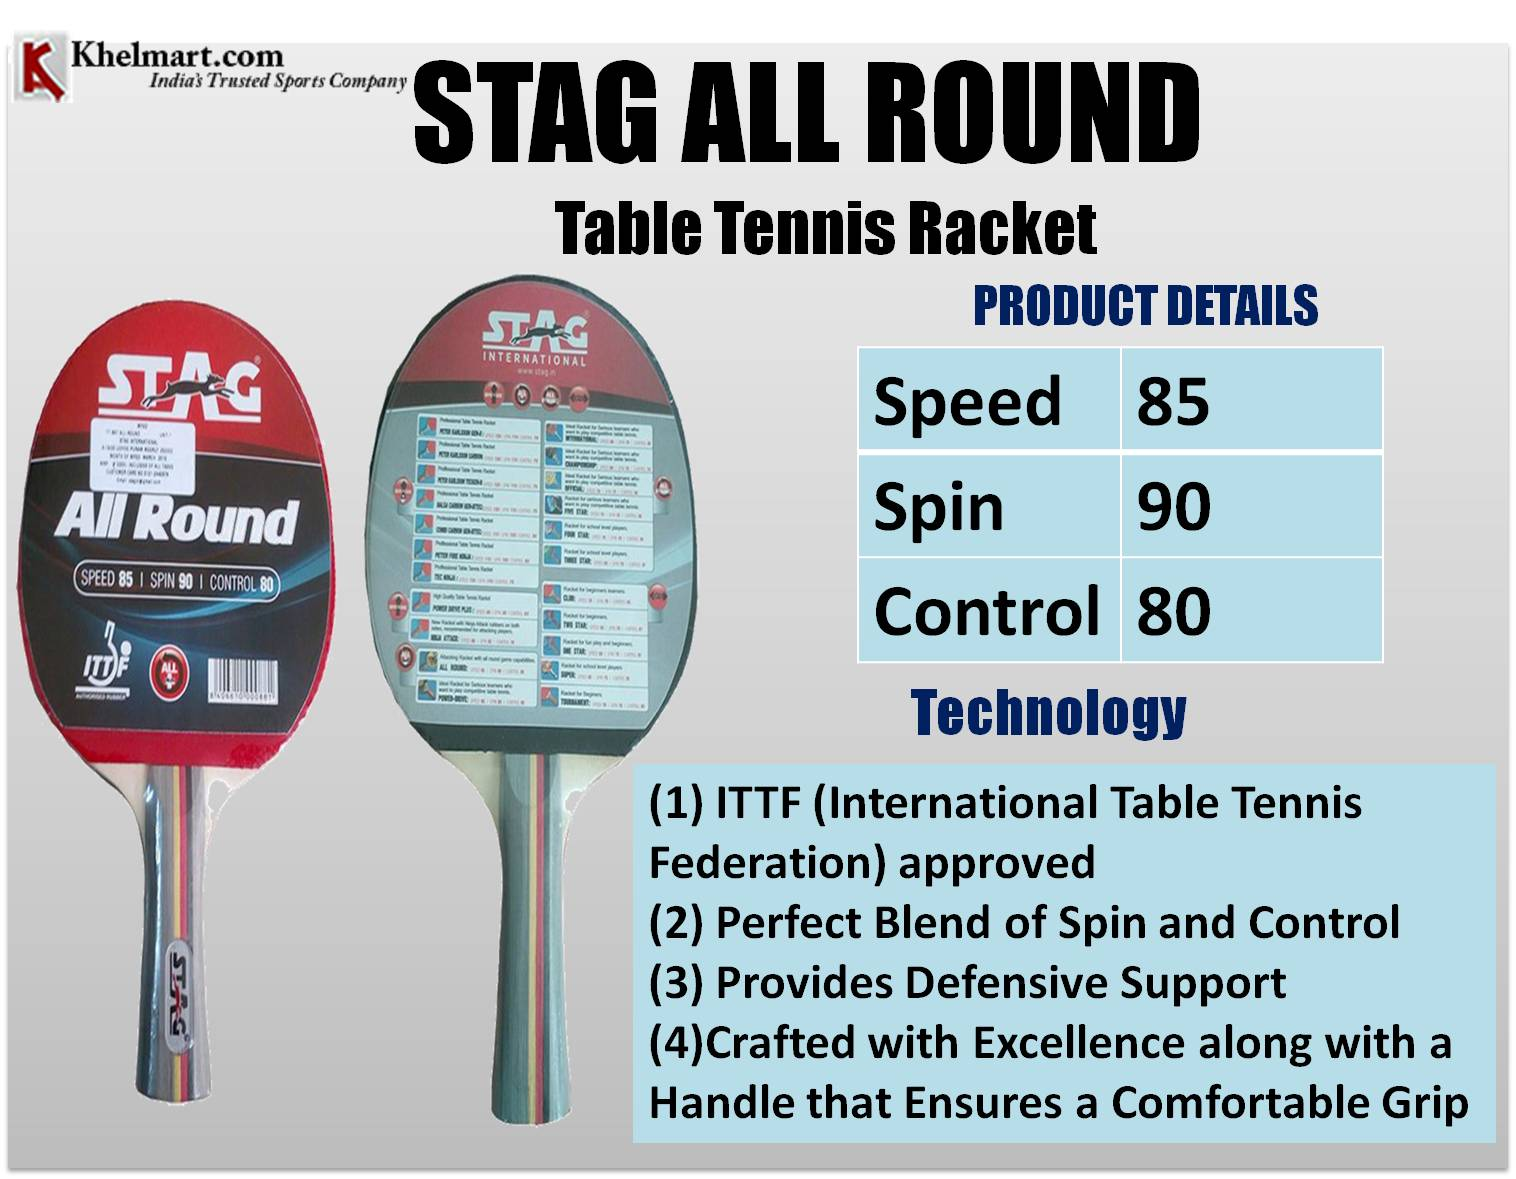 STAG_ALL_ROUND_Table_Tennis_Racket.jpg